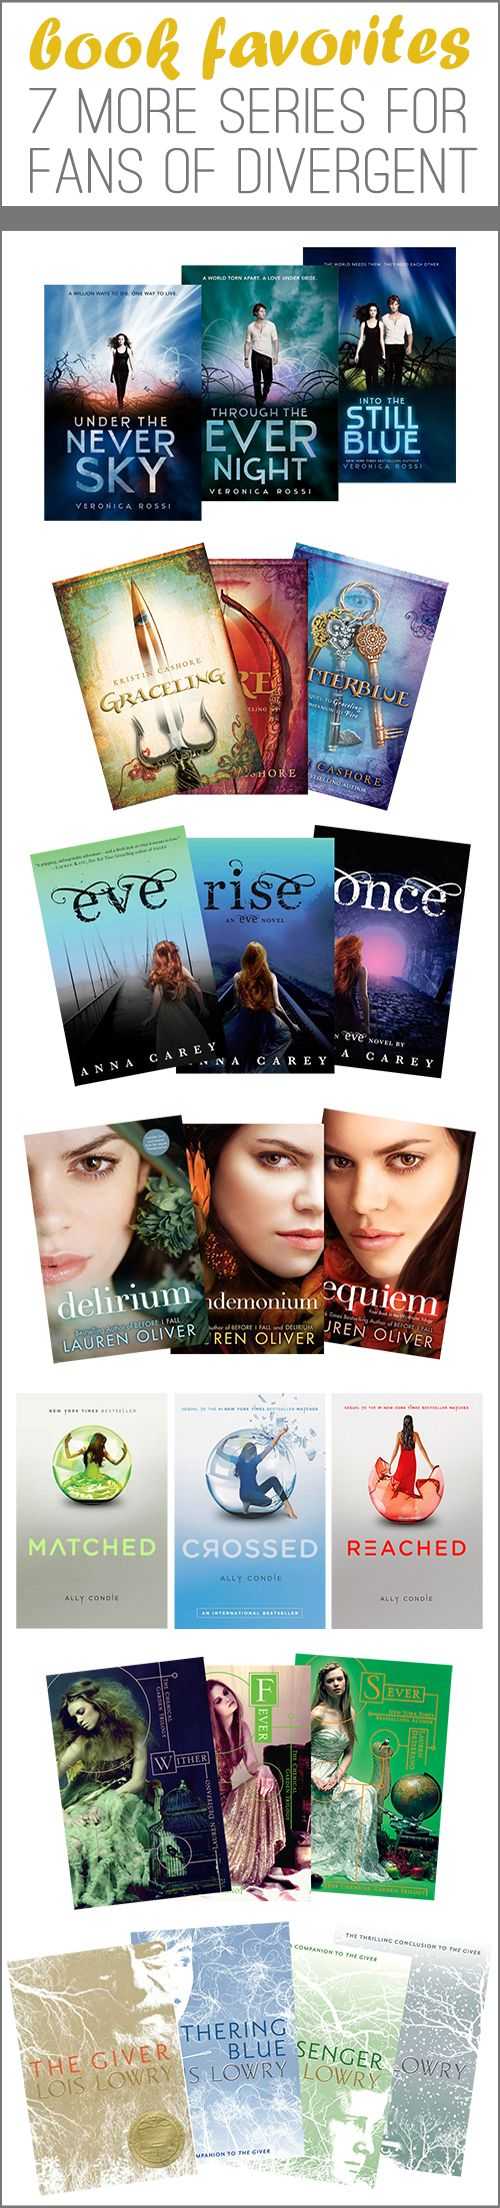 7 More Series for Fans of Divergent